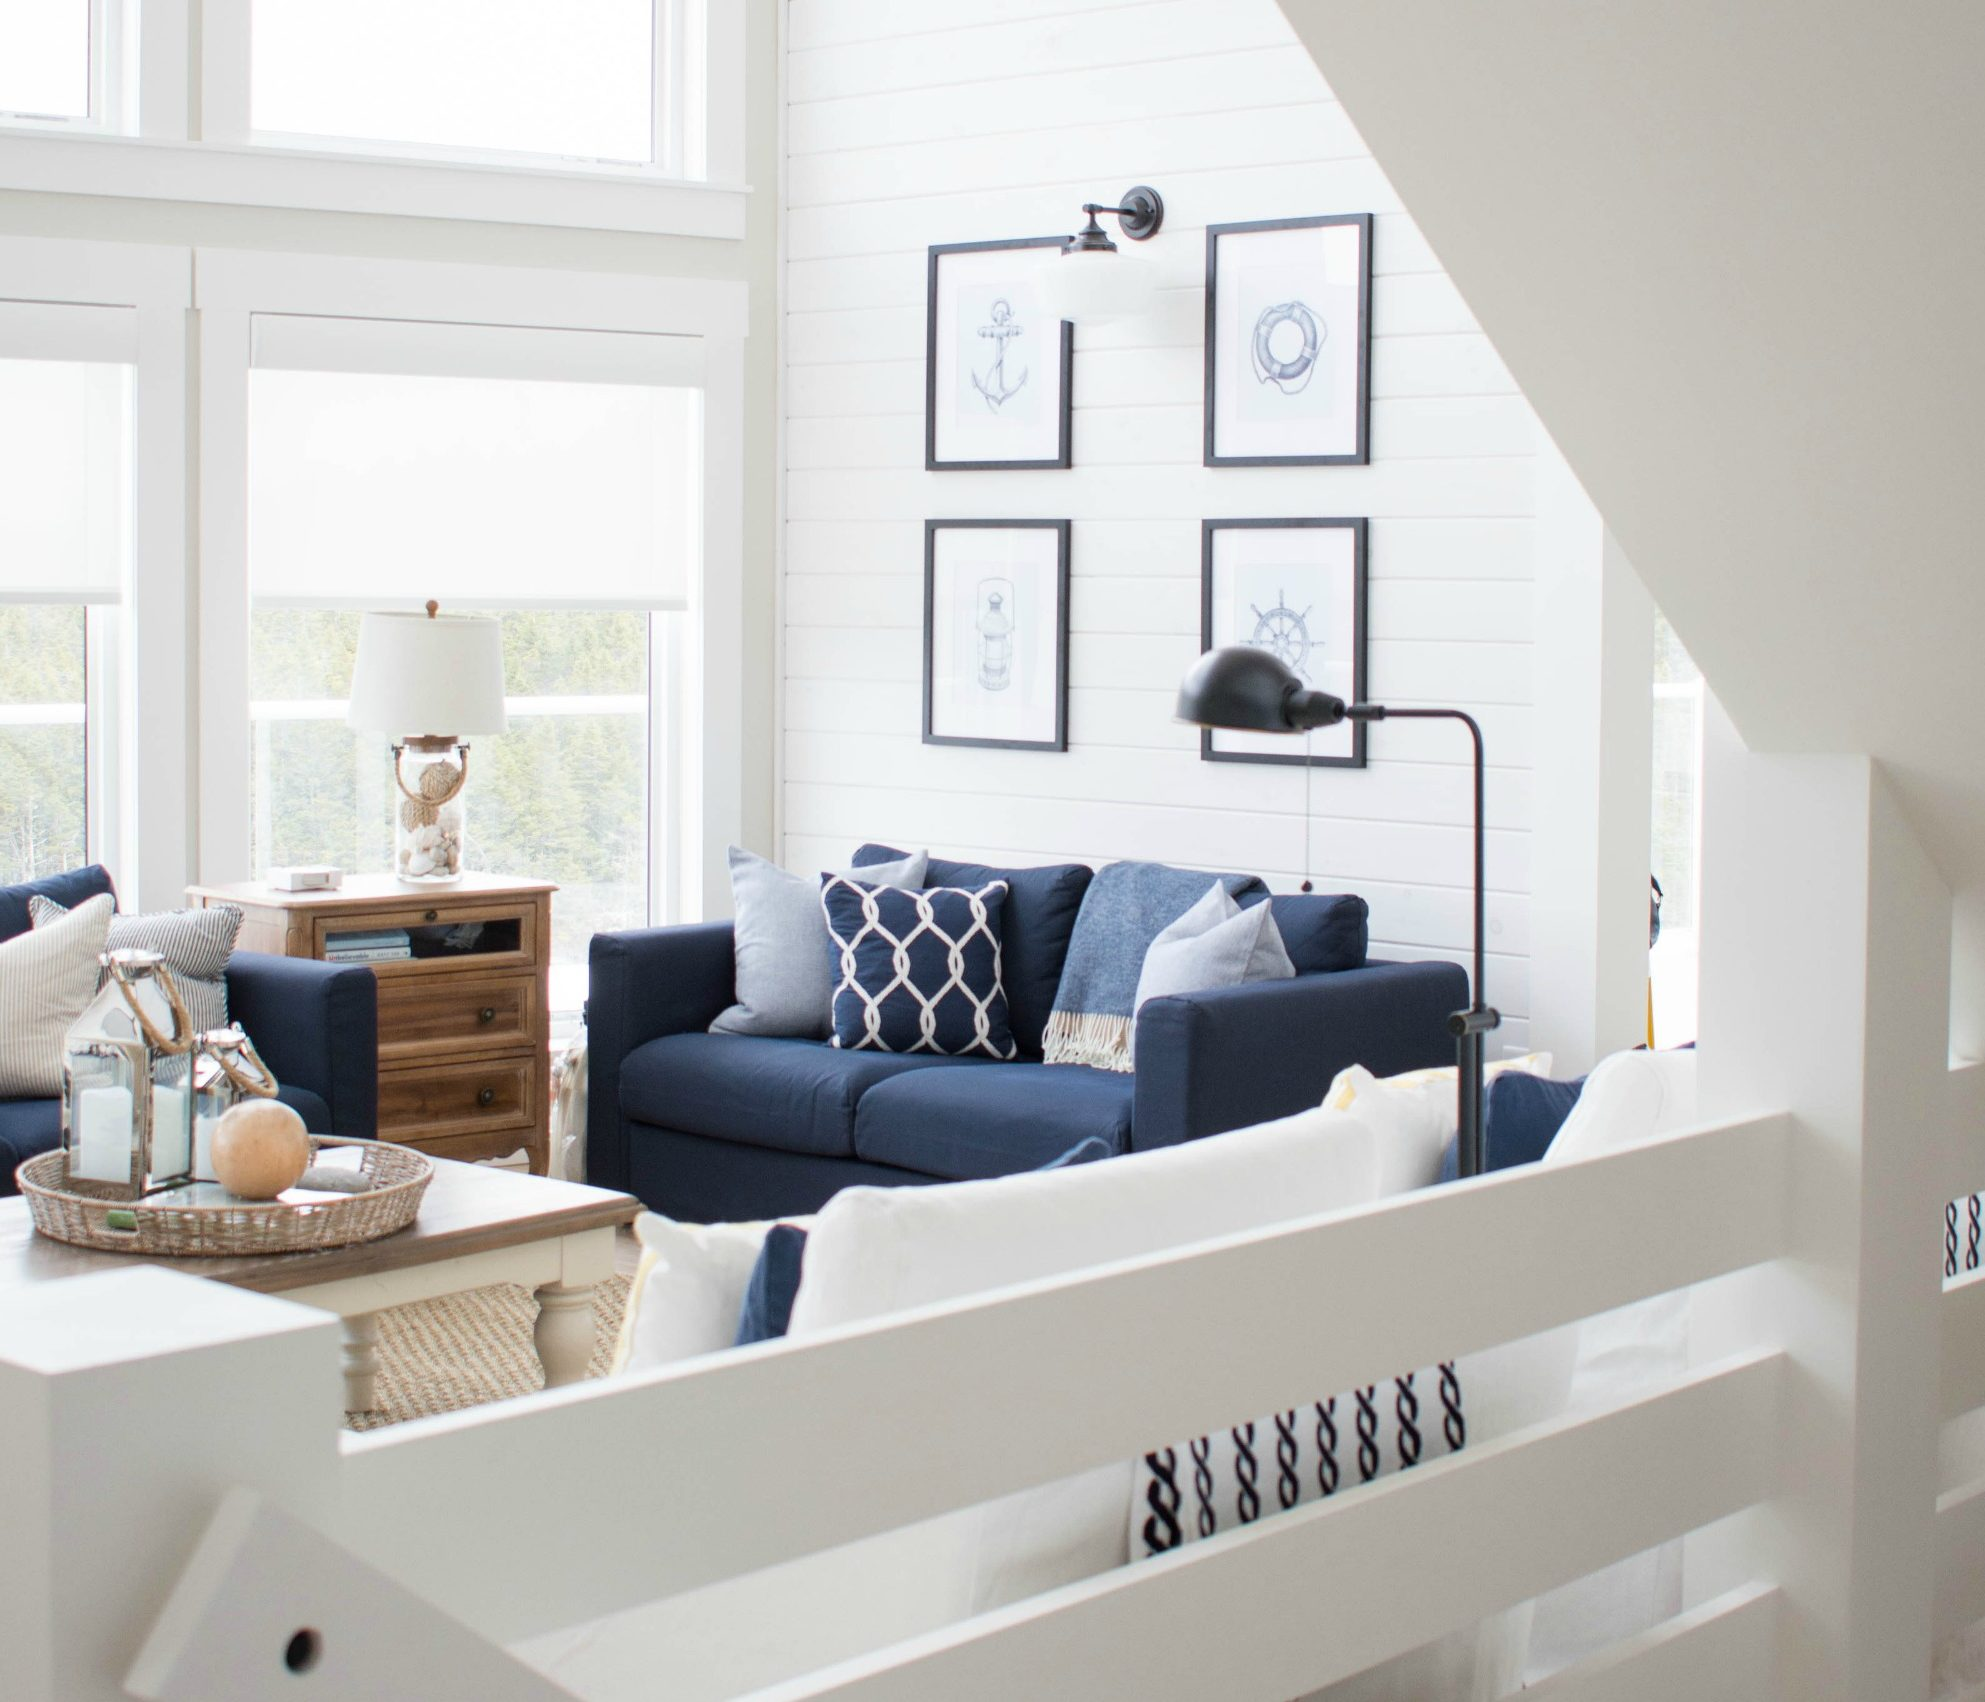 New Home Decorating Tips: A Pop Of Pretty Blog (Canadian Home Decorating Blog